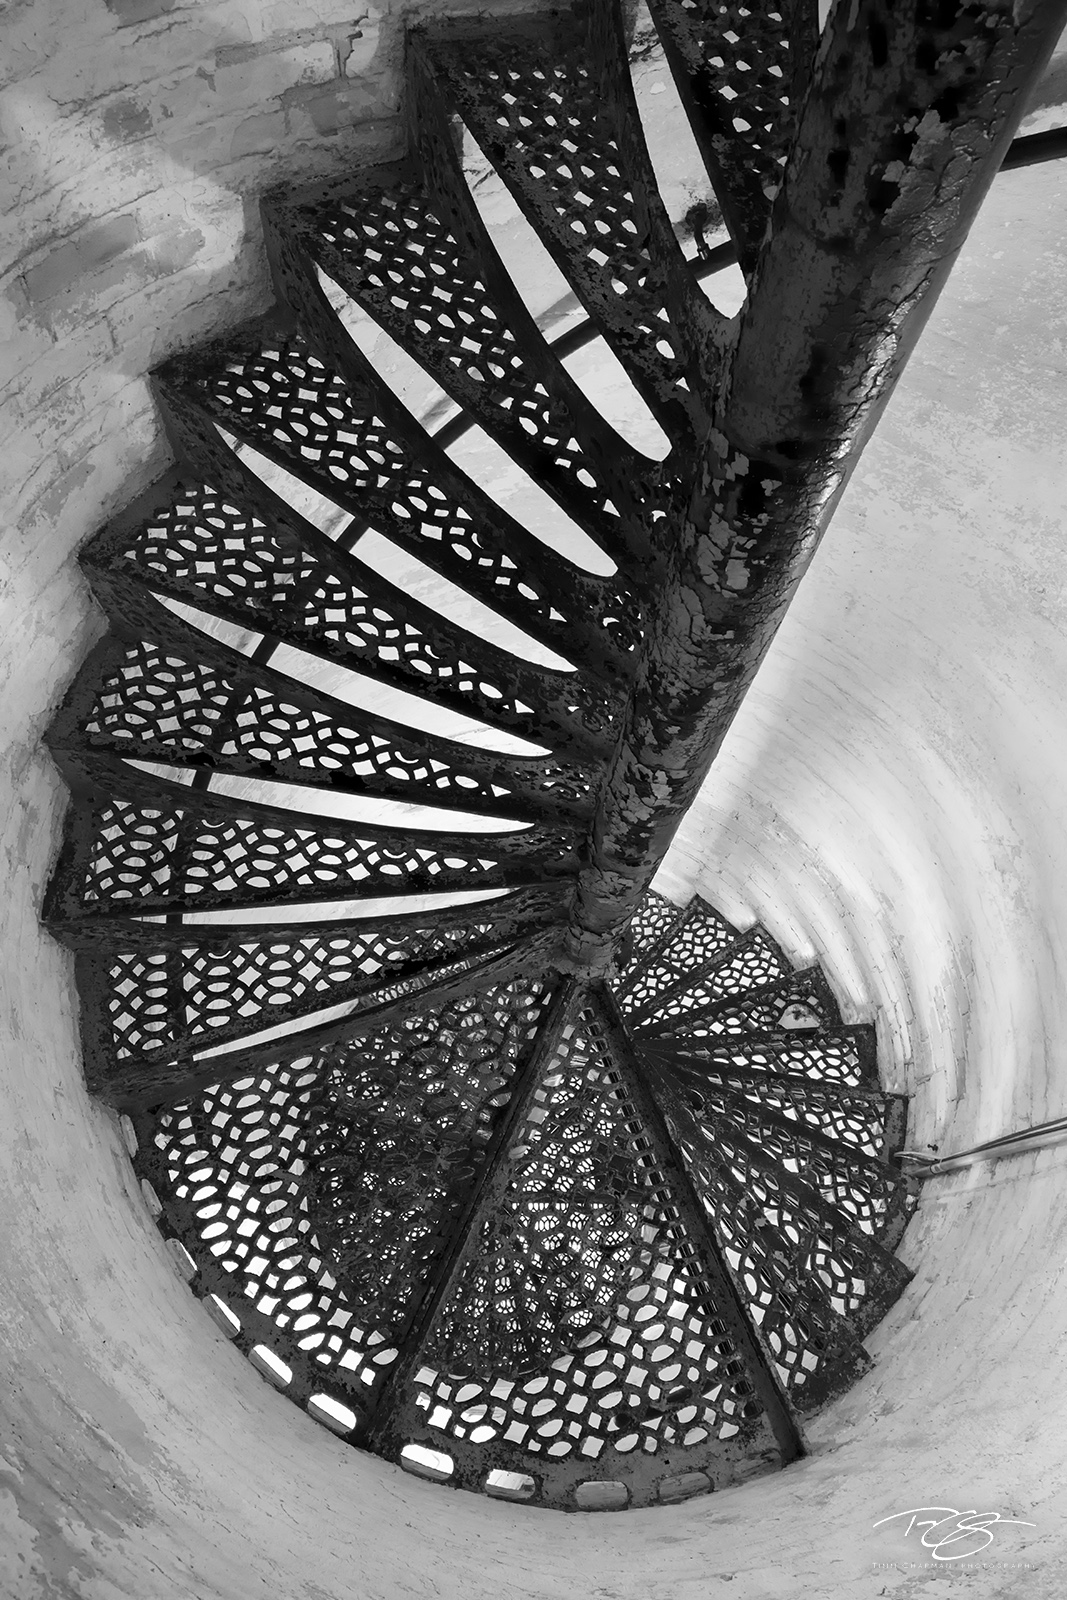 lighthouse, Looking Down, lake michigan, mackinaw, mackinaw city, michigan, light, beacon, staircase, spiral, abstract, steps, winding, peeling paint, window, black & white, monochrome, photo